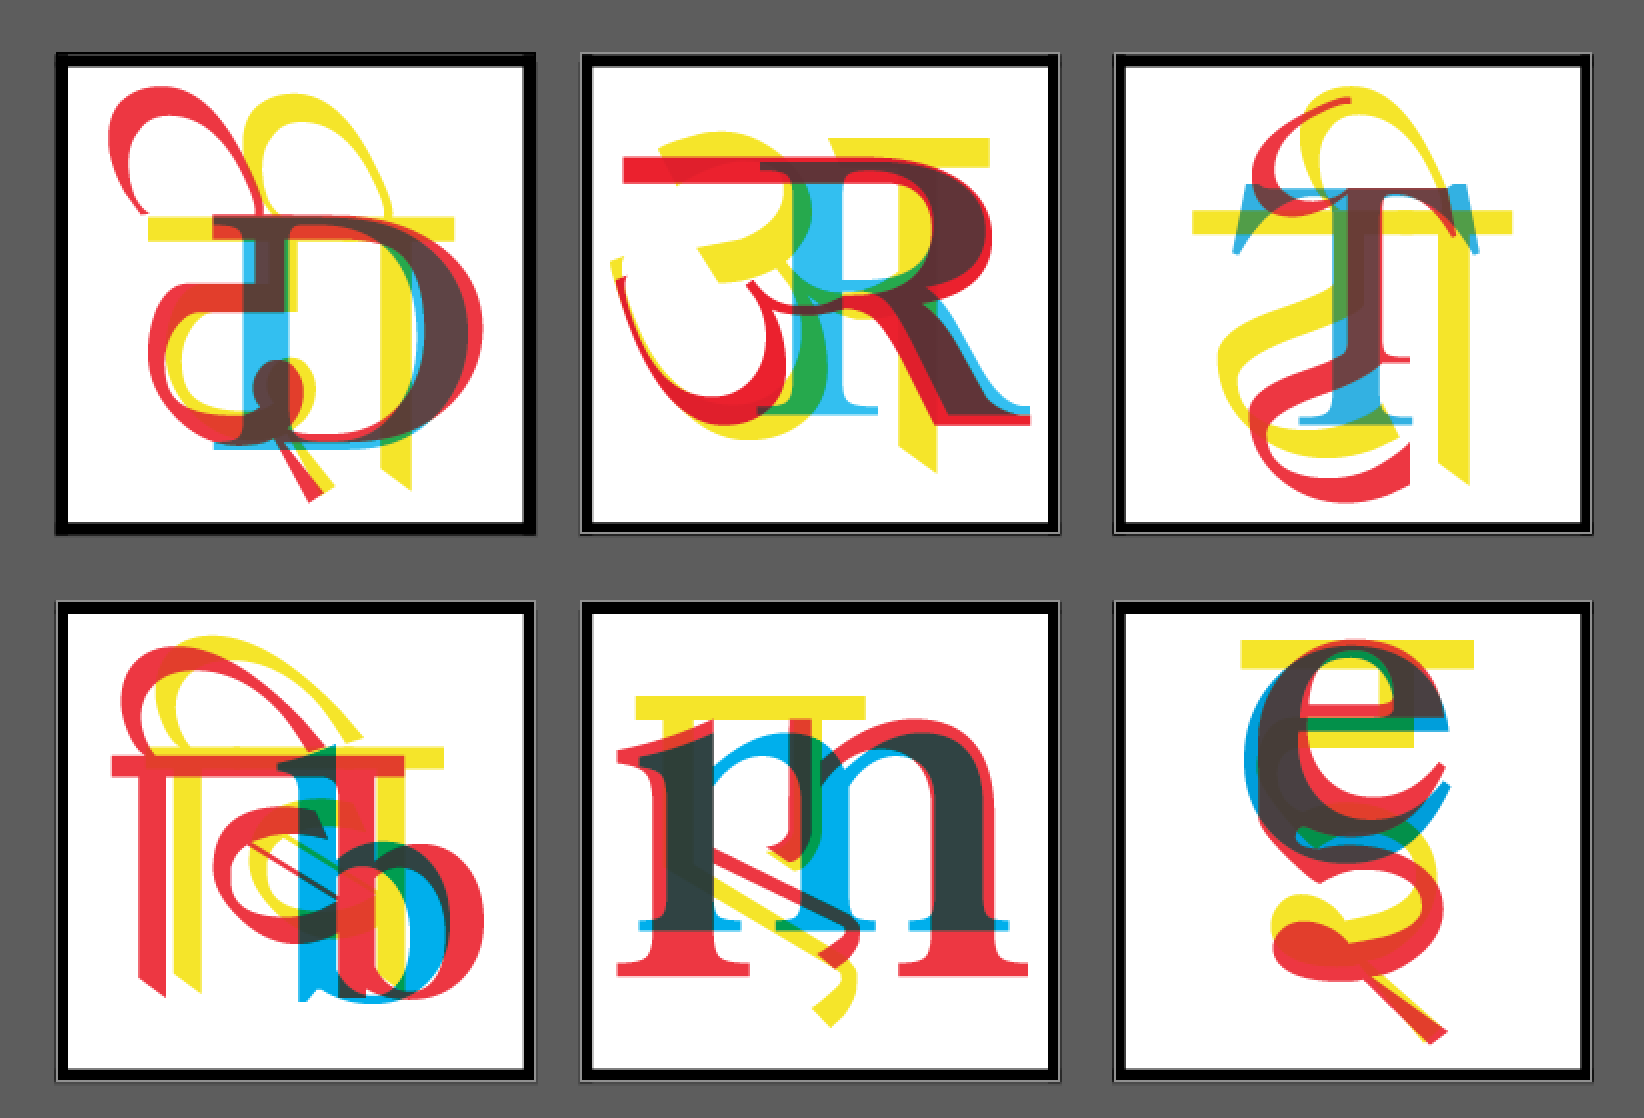 Six Display Letters - The display letters show three uppercase letters in the top row and three lowercase letter in the bottom row.